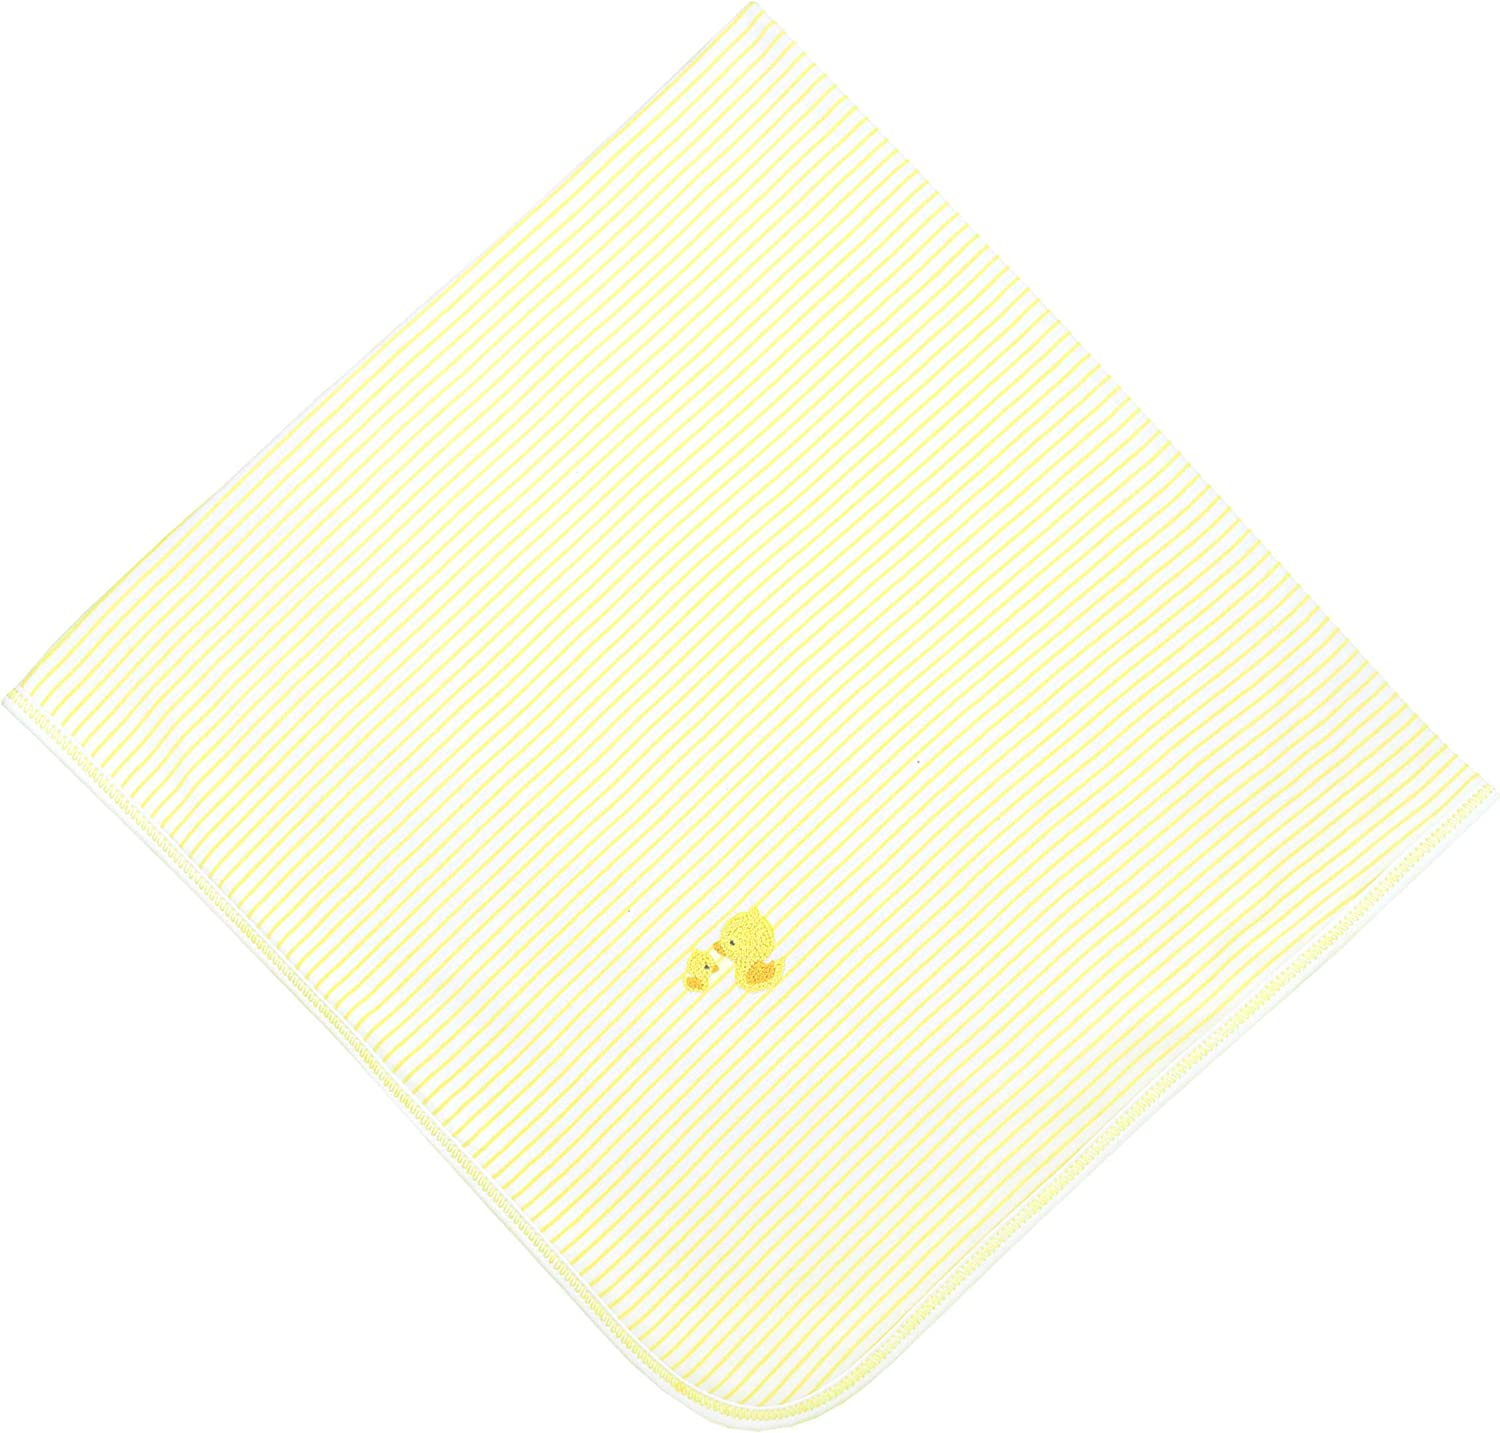 Magnolia Baby Unisex Baby Tiny Rubber Ducky Embroidered Receiving Blanket Yellow One Size